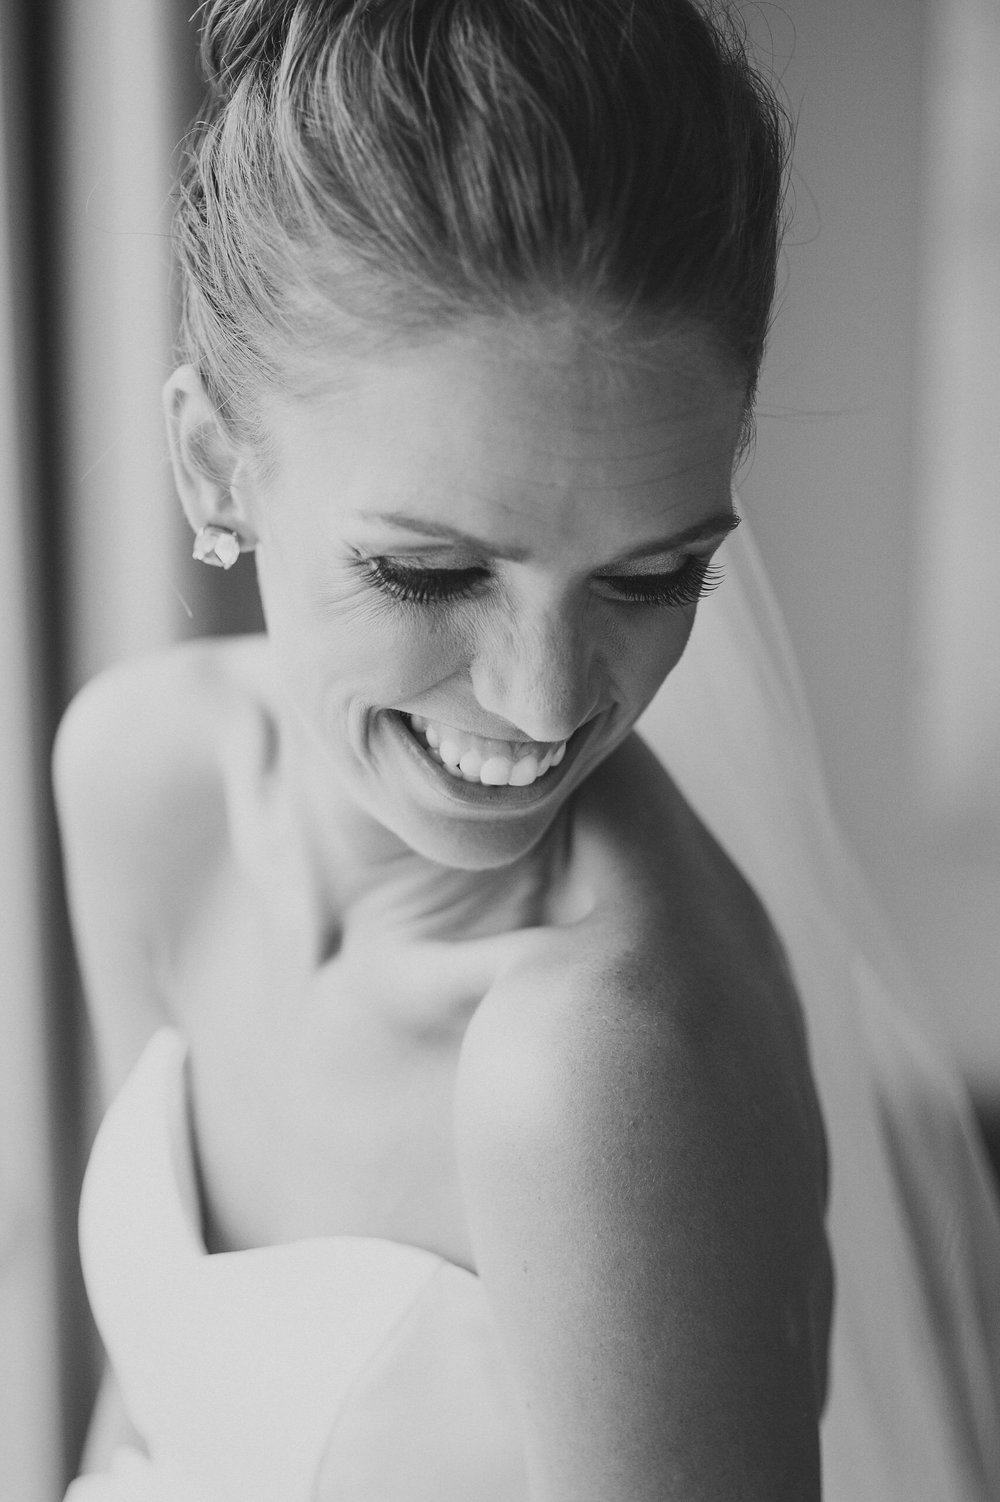 shelby&jordan|smitten&hooked|wedding|groups-017.jpg